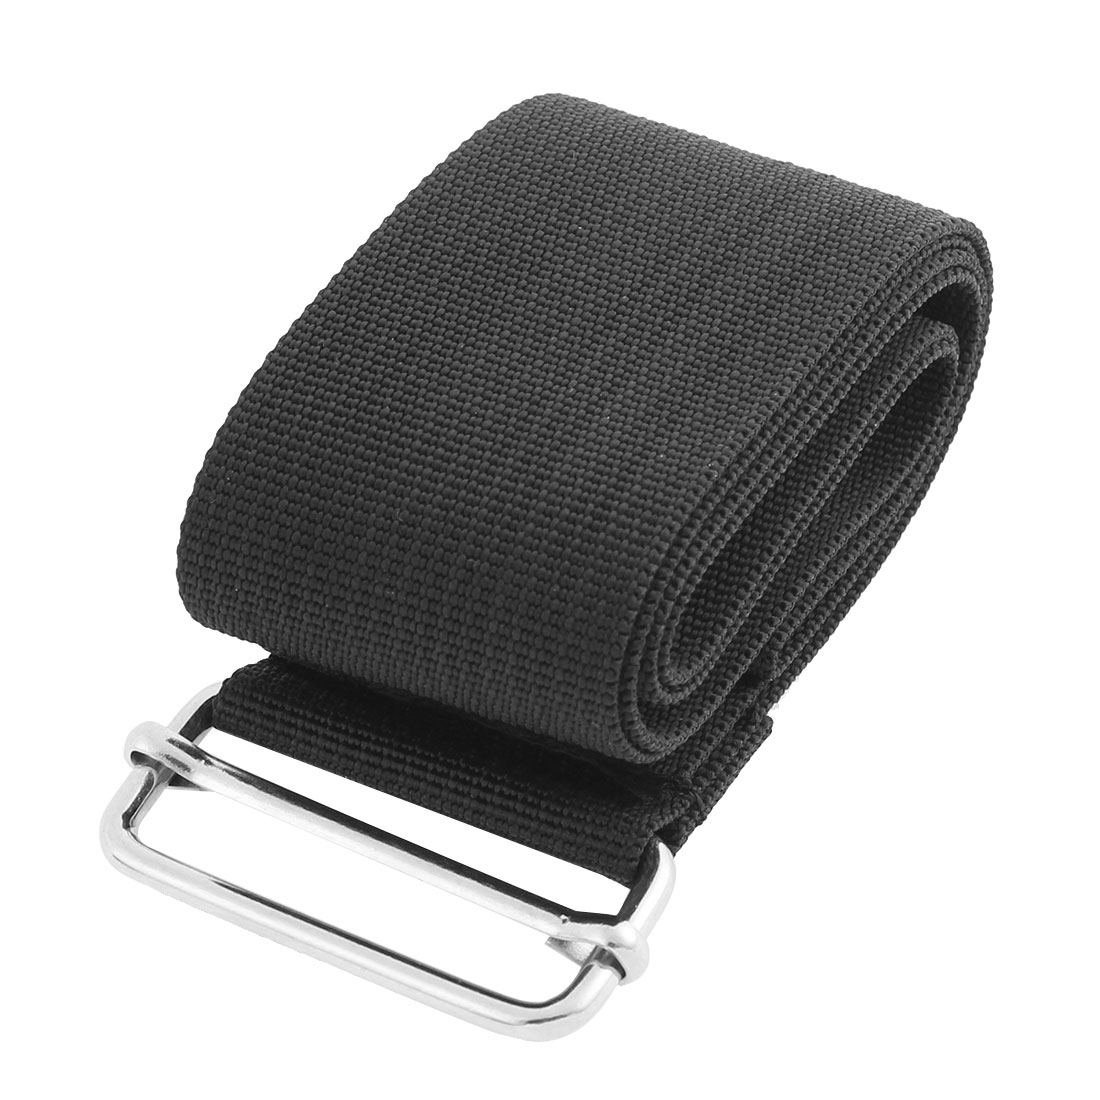 Adjustable Travel Luggage Suitcase Backpack Strap Belt Band 50mm x 1m w Metal Buckles